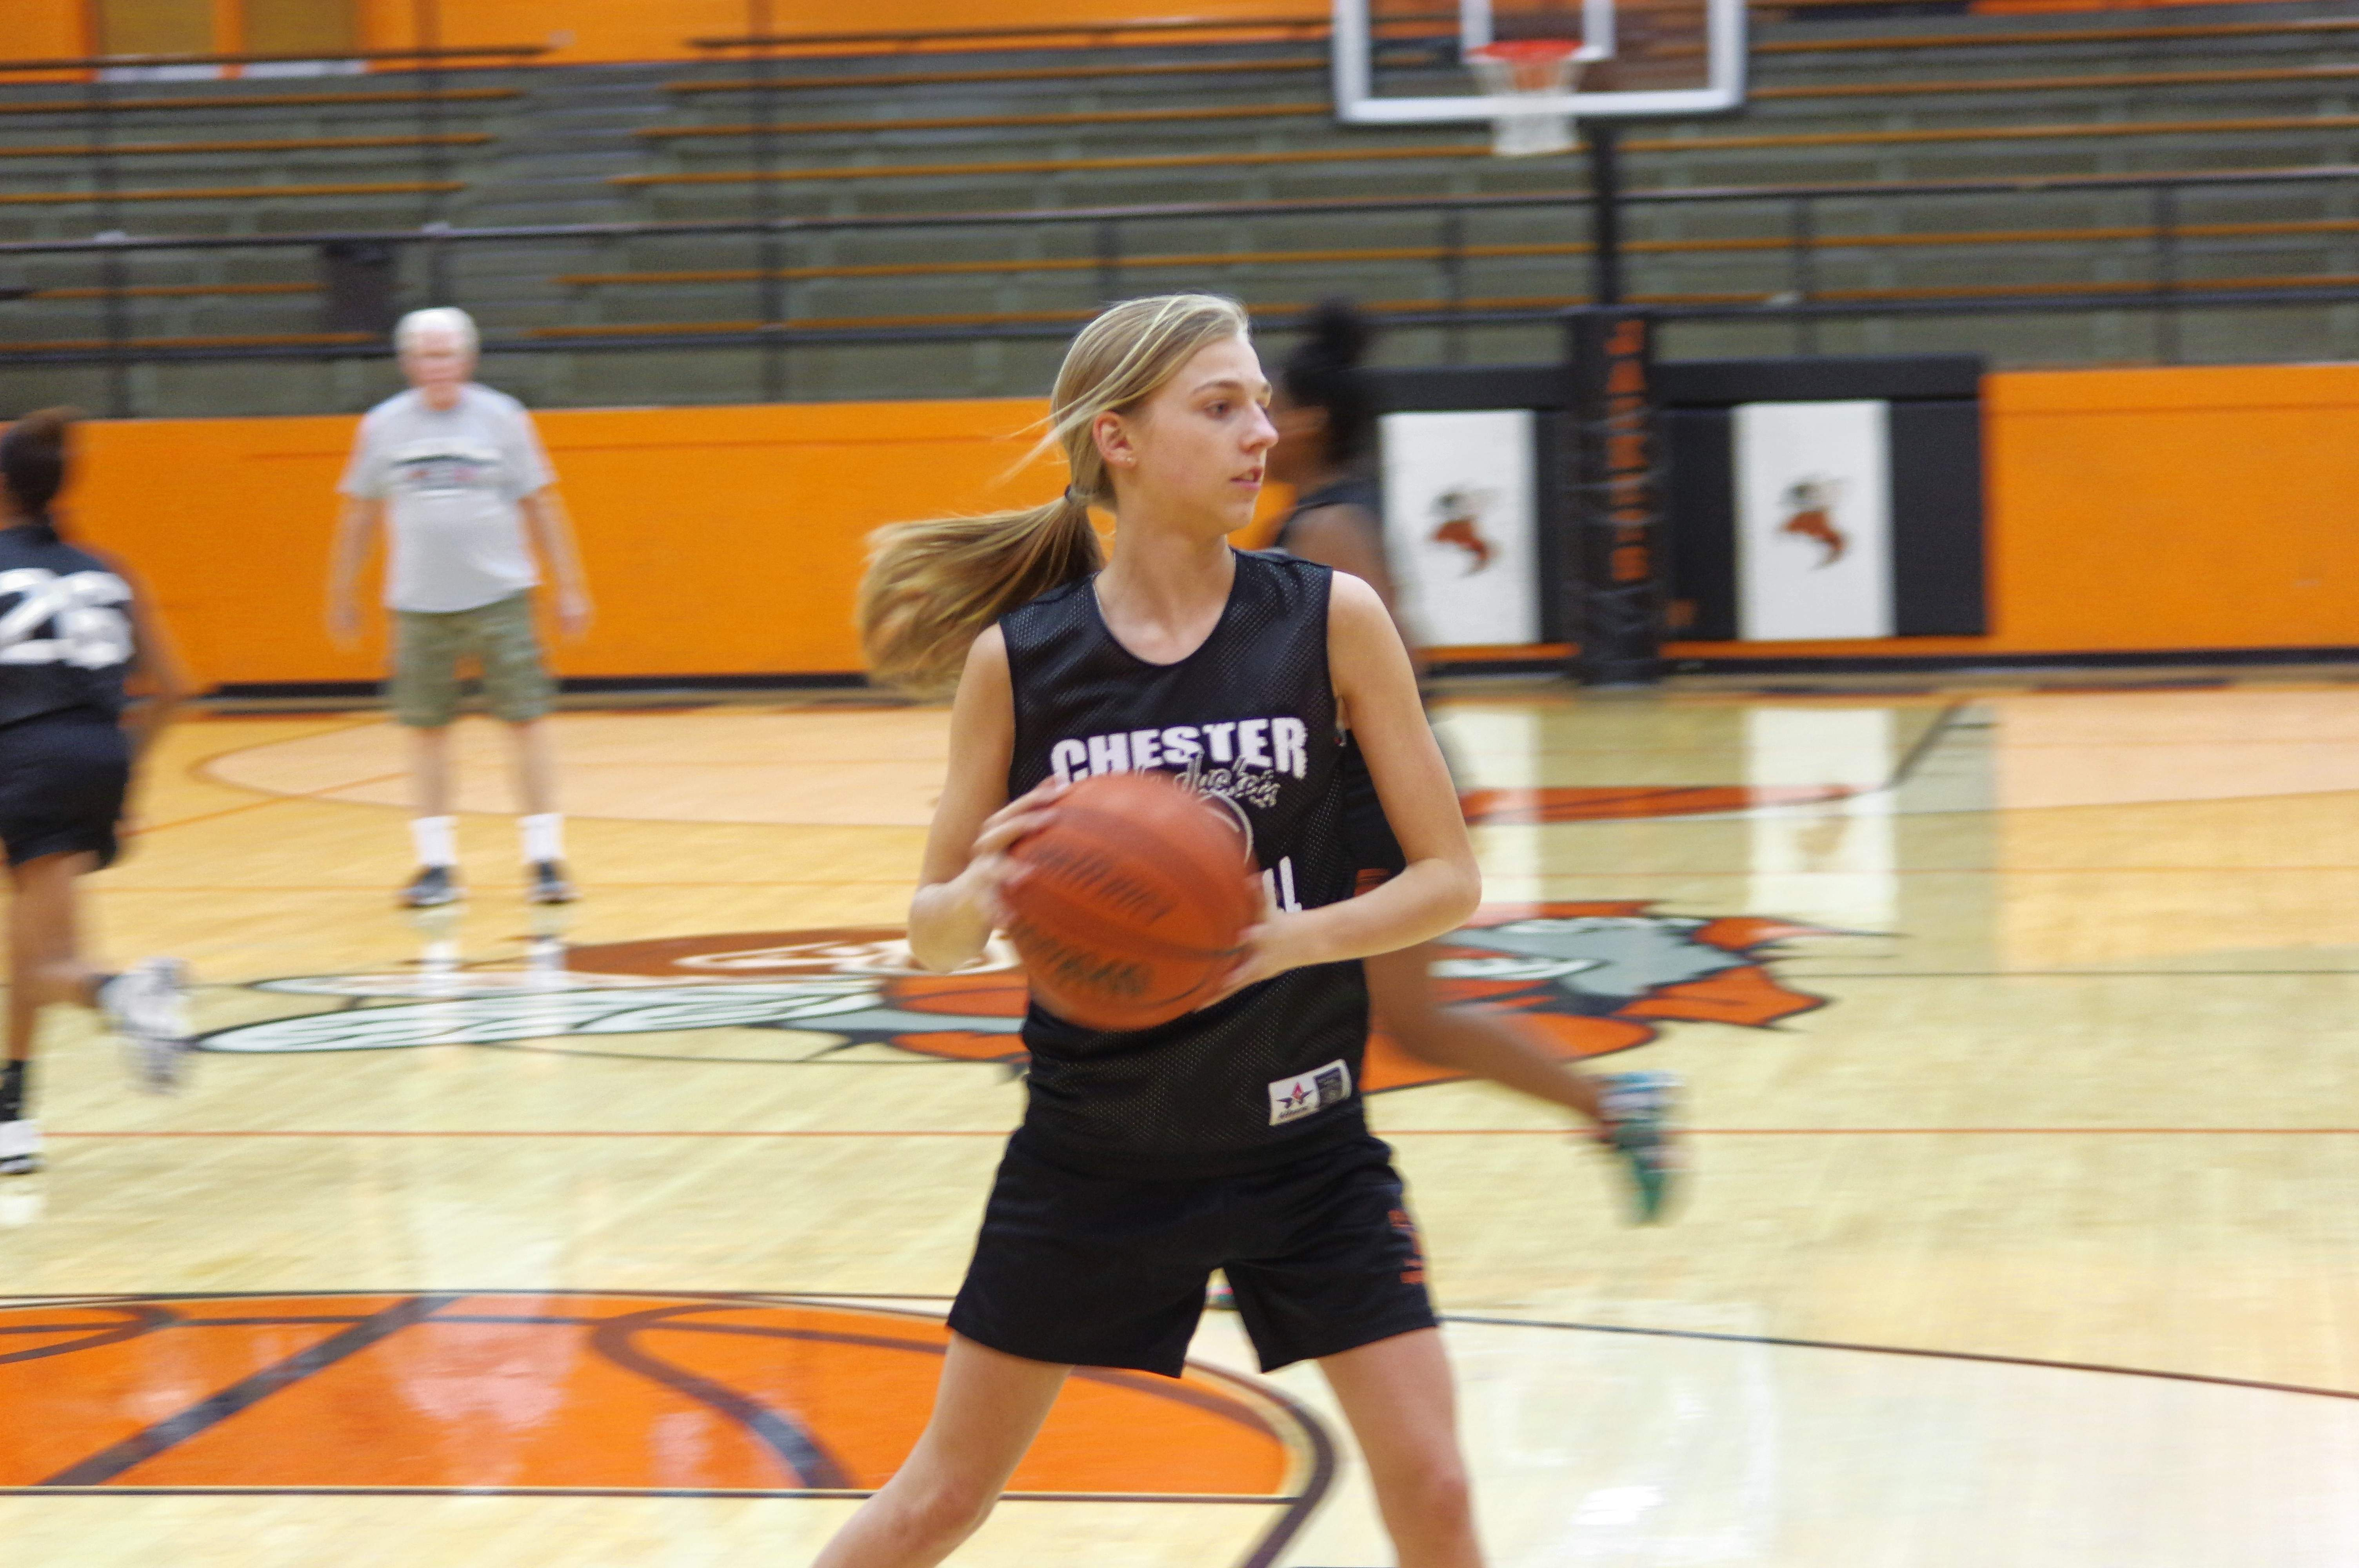 Josie Kattenbraker works on her offensive skills at a recent Chester High School Lady Yellow Jacket practice. Between Nov. 27 and Dec. 2, Kattenbraker, a freshman, scored 23 points, grabbed eight rebounds, dished out two assists and recorded one steal.